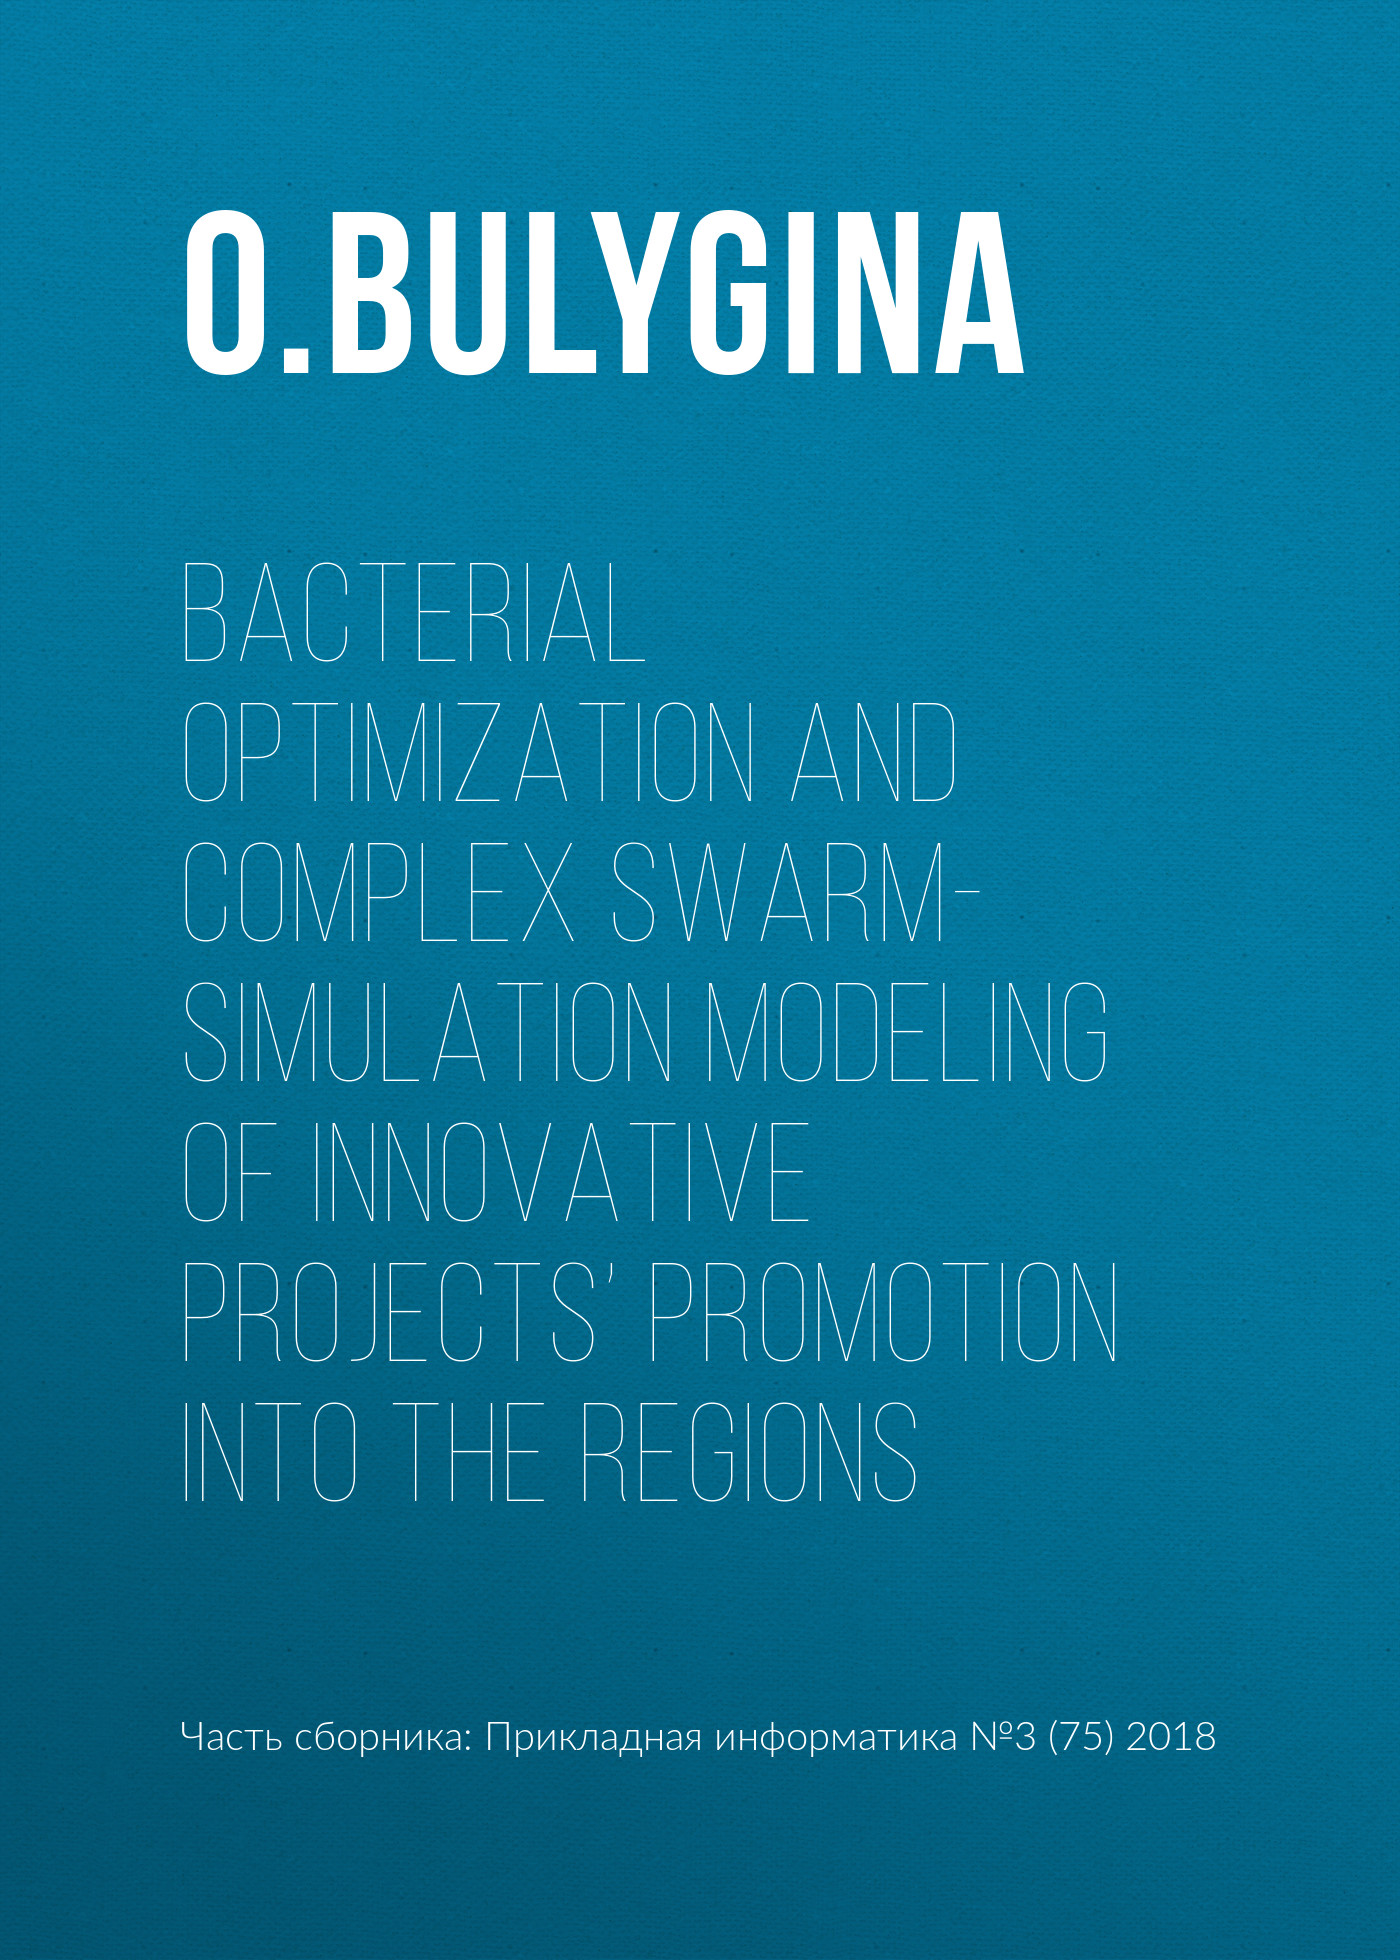 O. Bulygina Bacterial optimization and complex swarm-simulation modeling of innovative projects' promotion into the regions